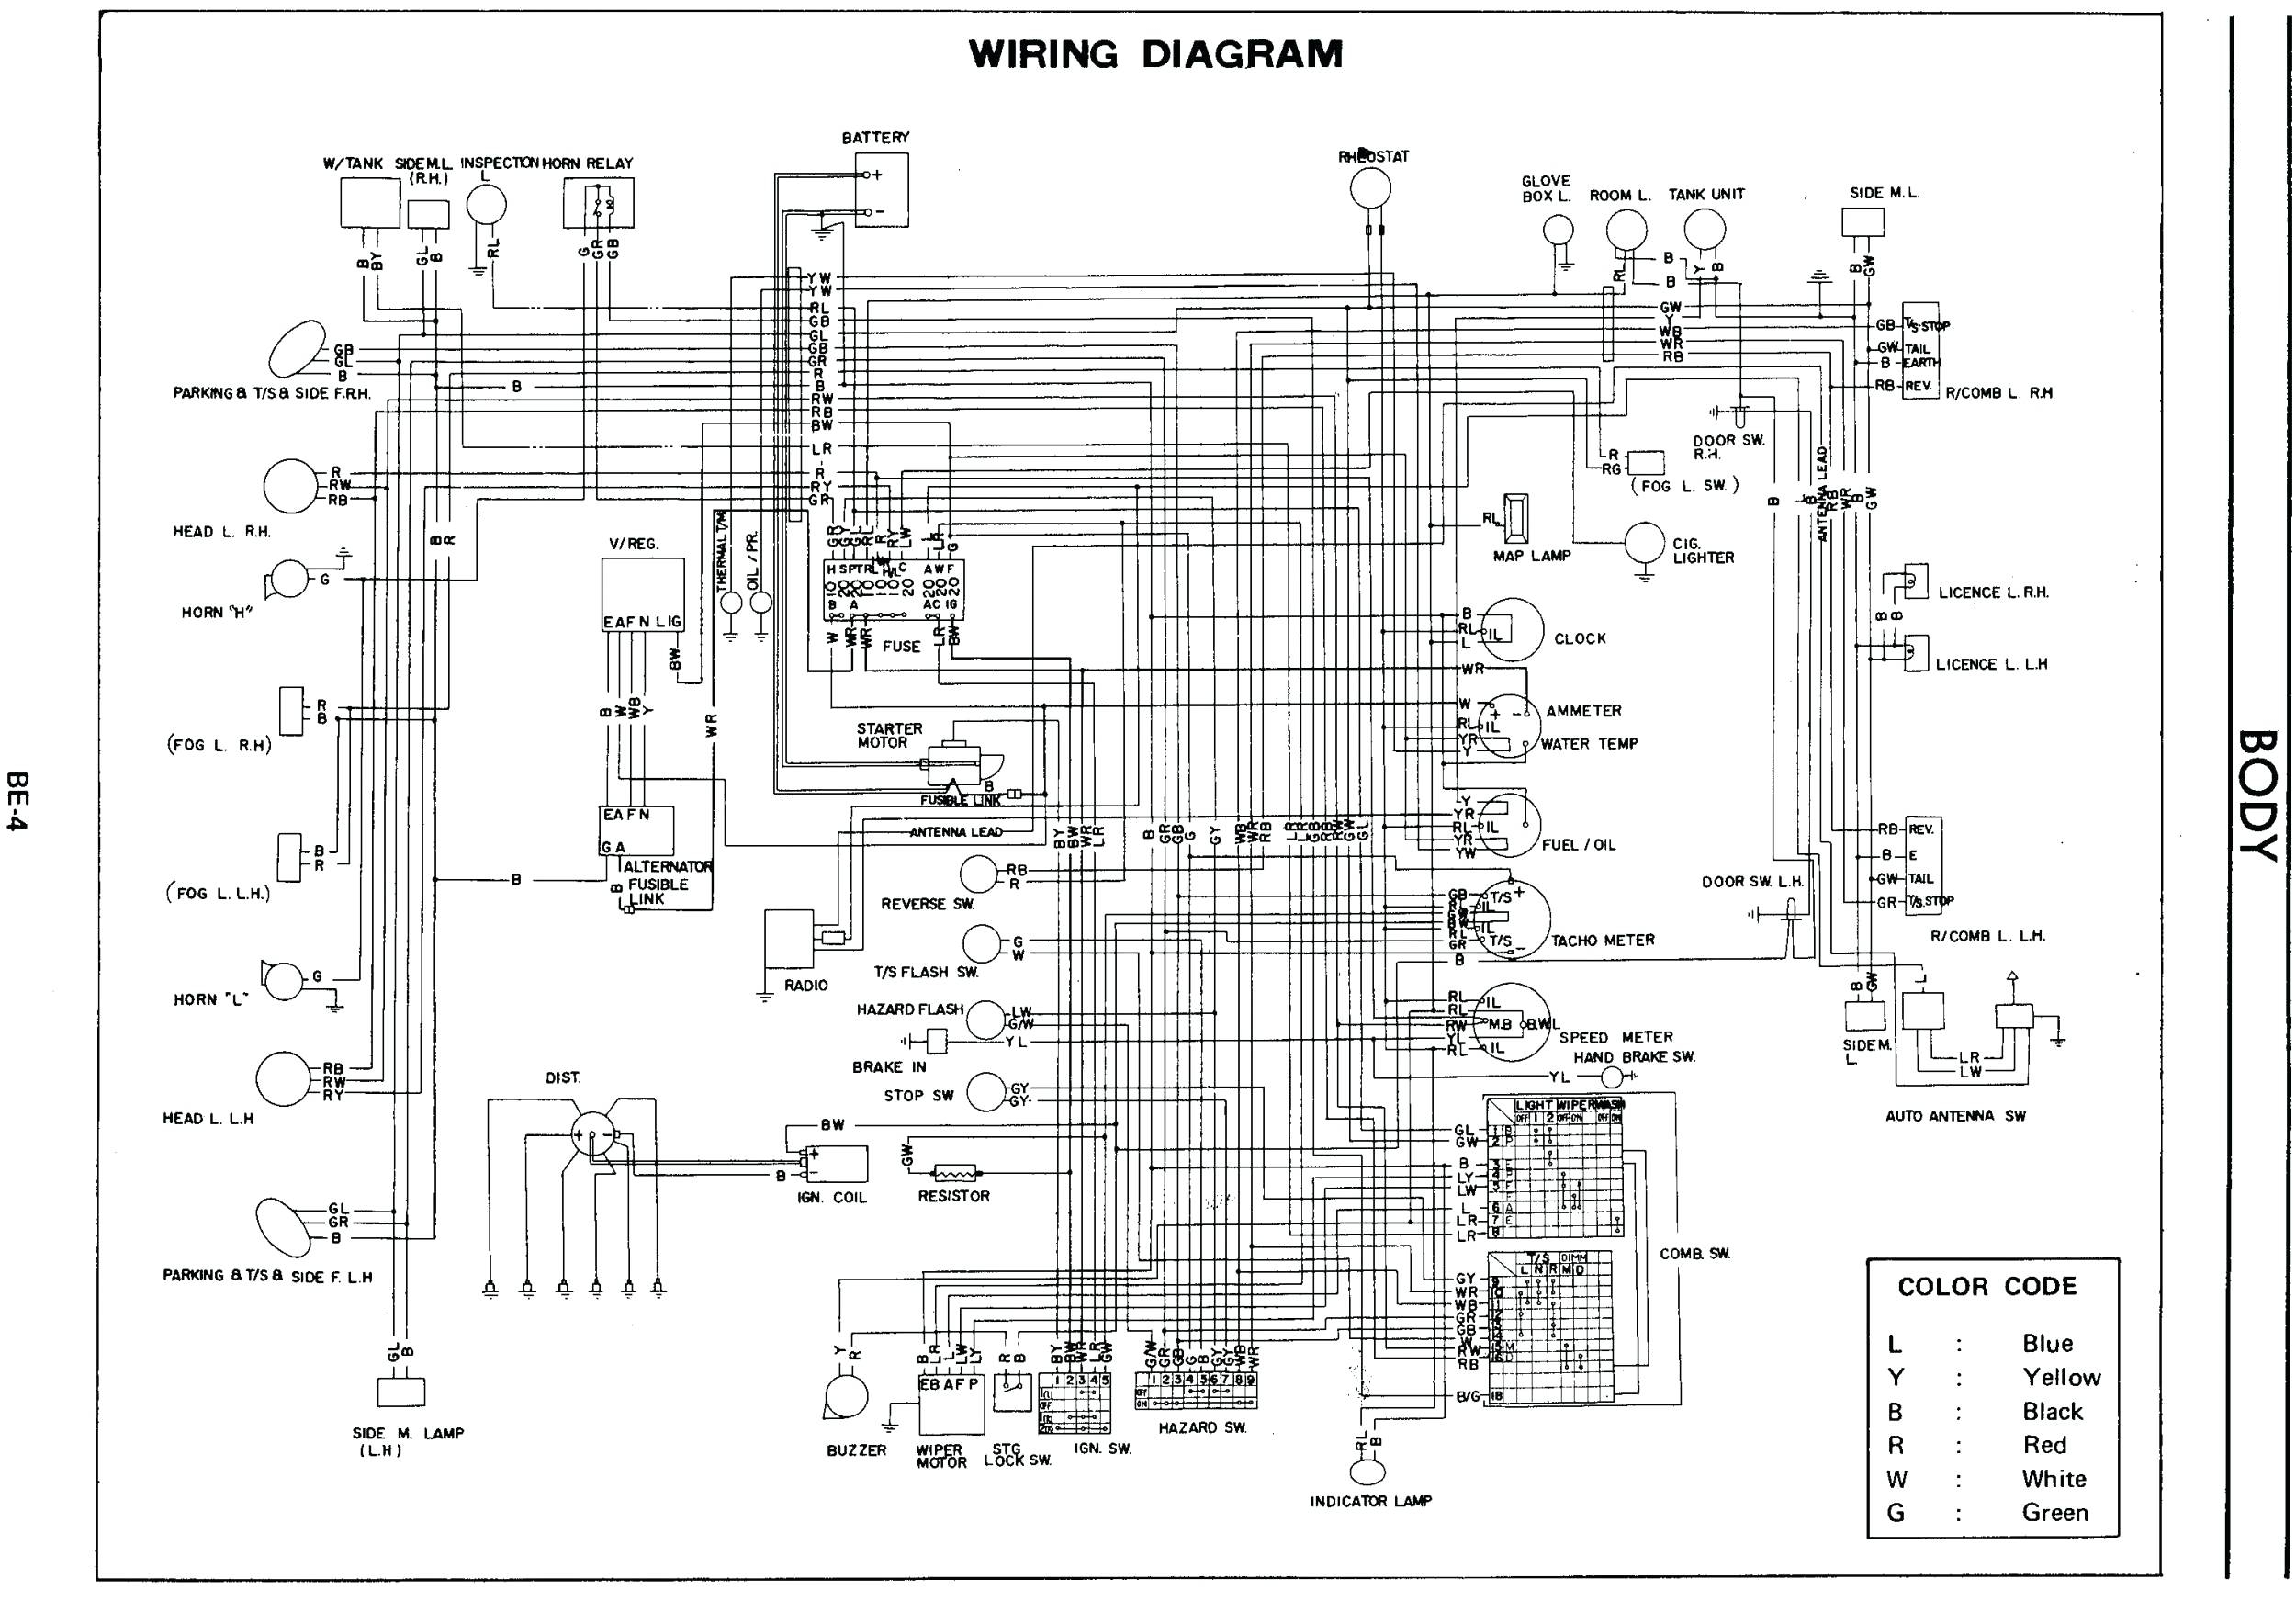 cooper fuse diagram 2009 diagram data schema